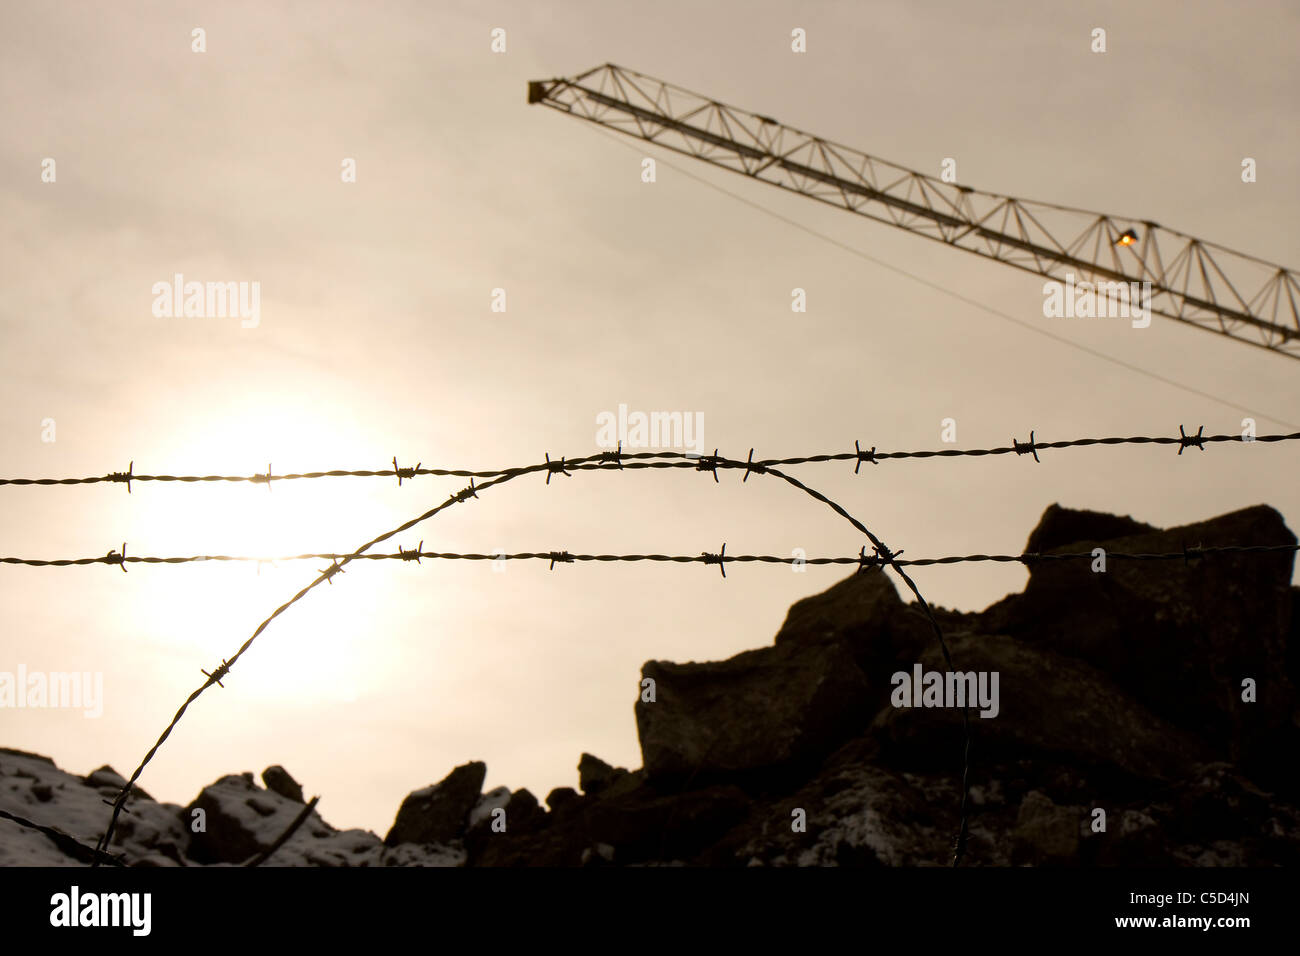 Close-up of barbed wire fence with rocks and crane against clear sky ...